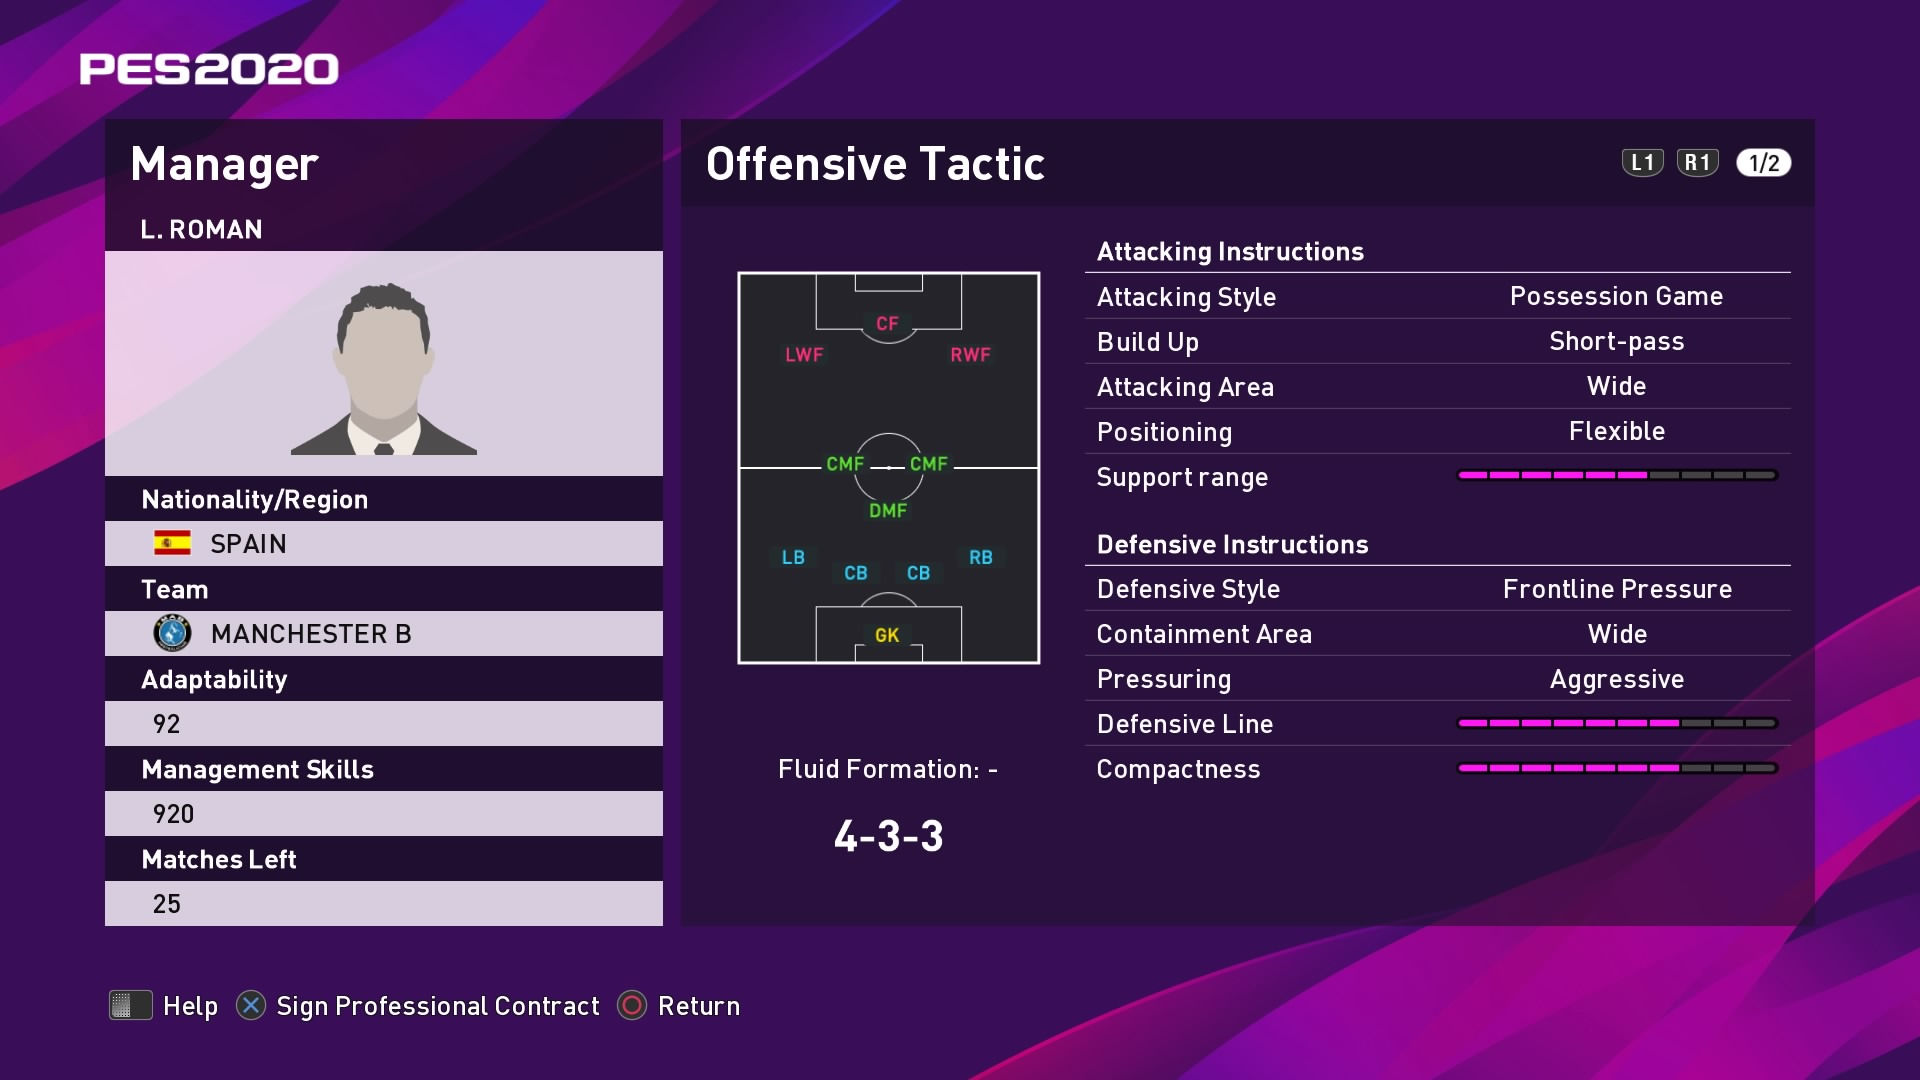 L. Roman (2) (Pep Guardiola) Offensive Tactic in PES 2020 myClub